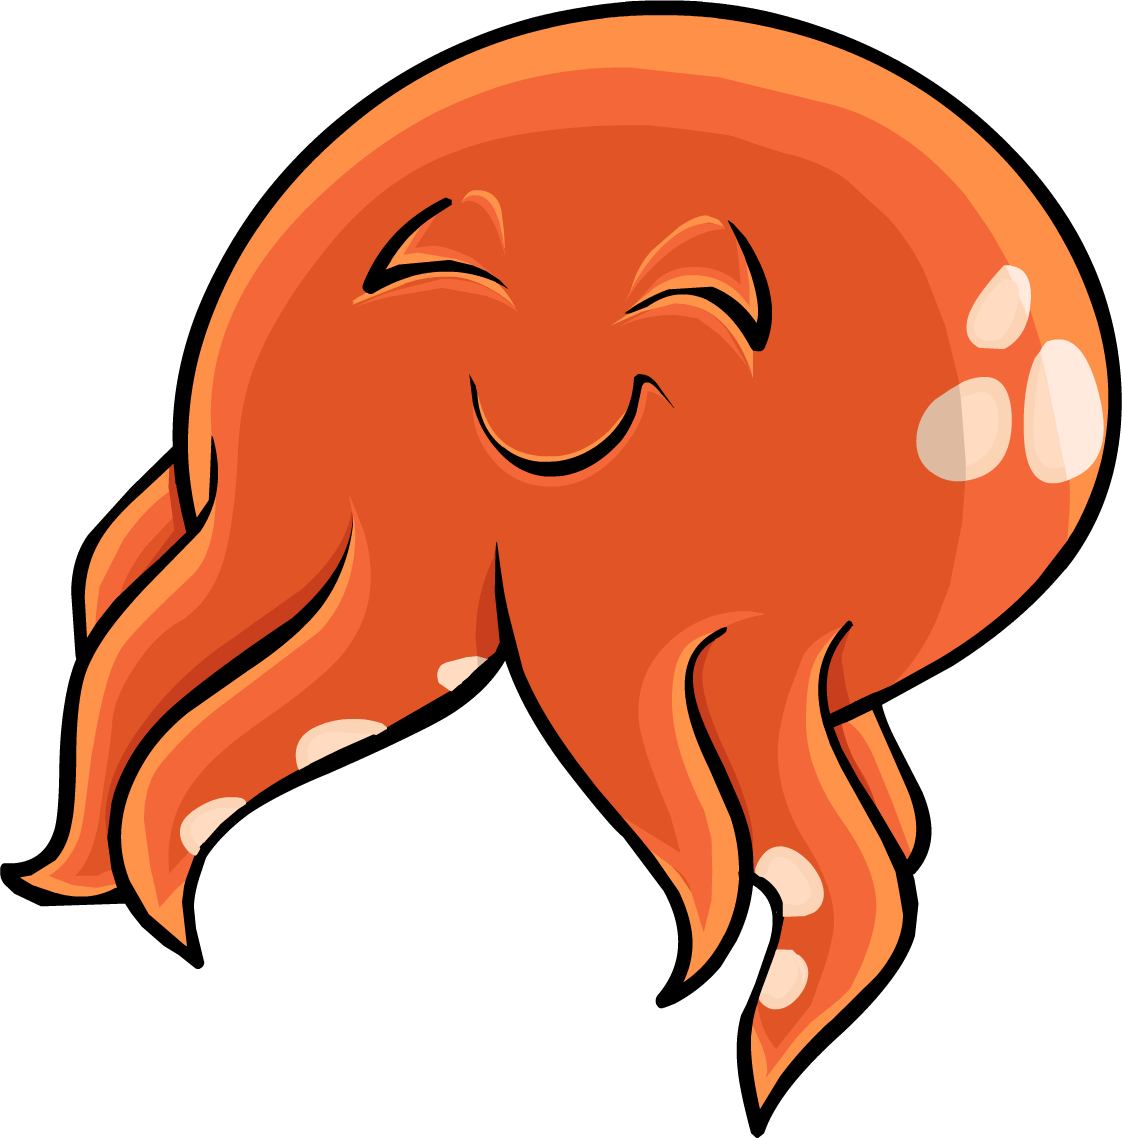 Green clipart squid. Png transparent images pluspng